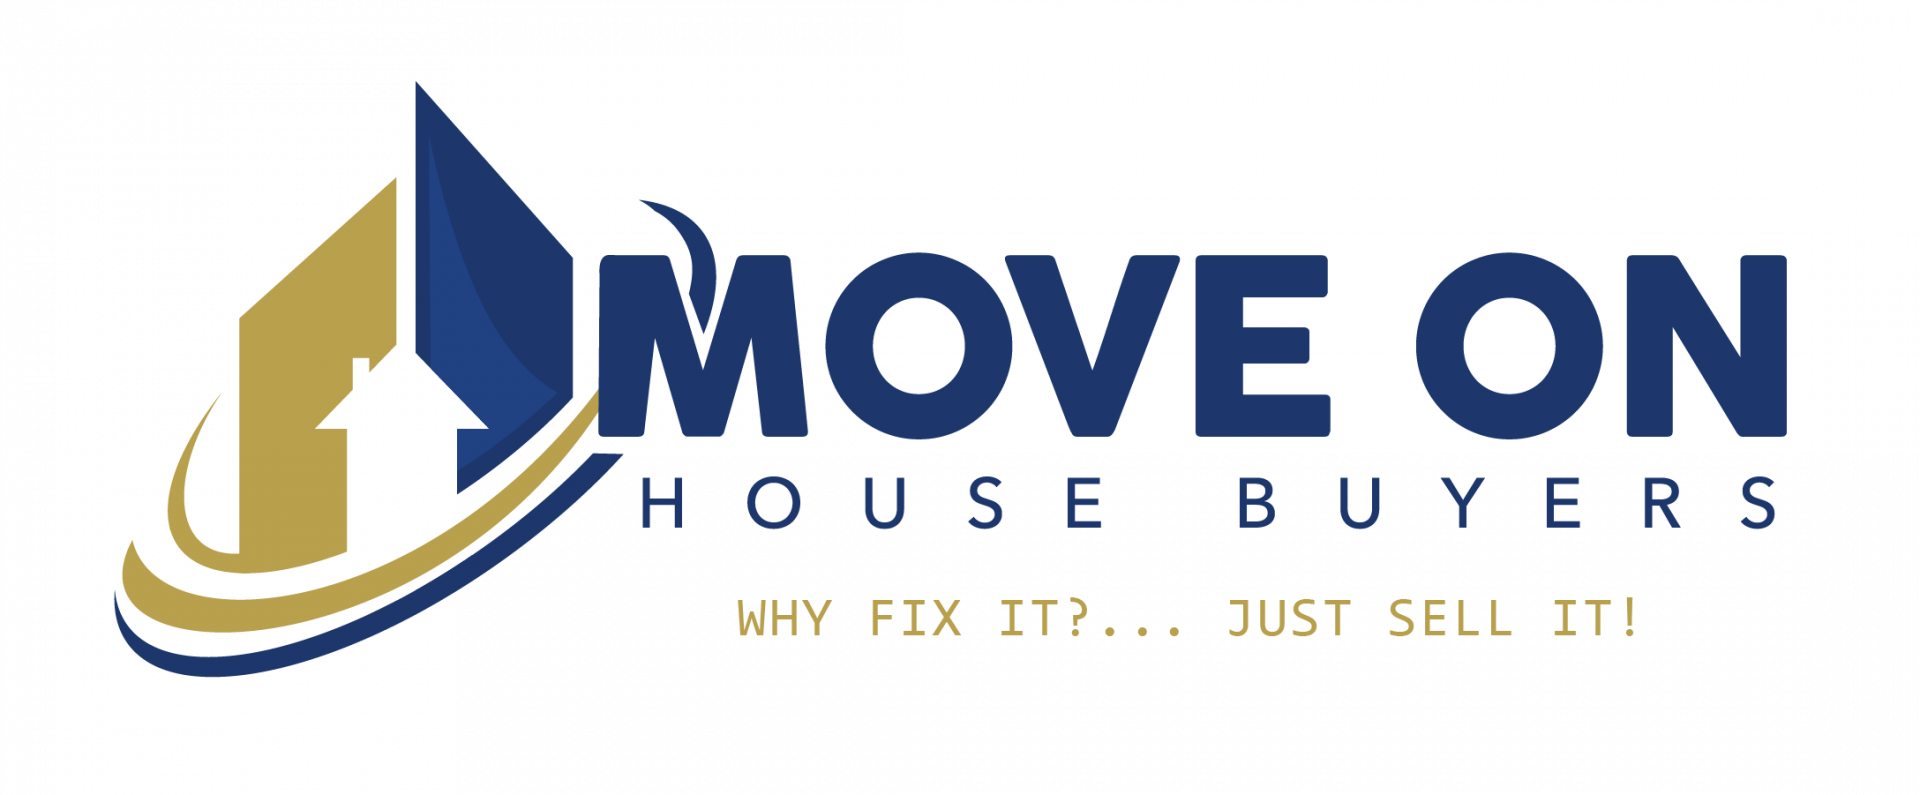 We Buy Houses Houston – Move On House Buyers logo